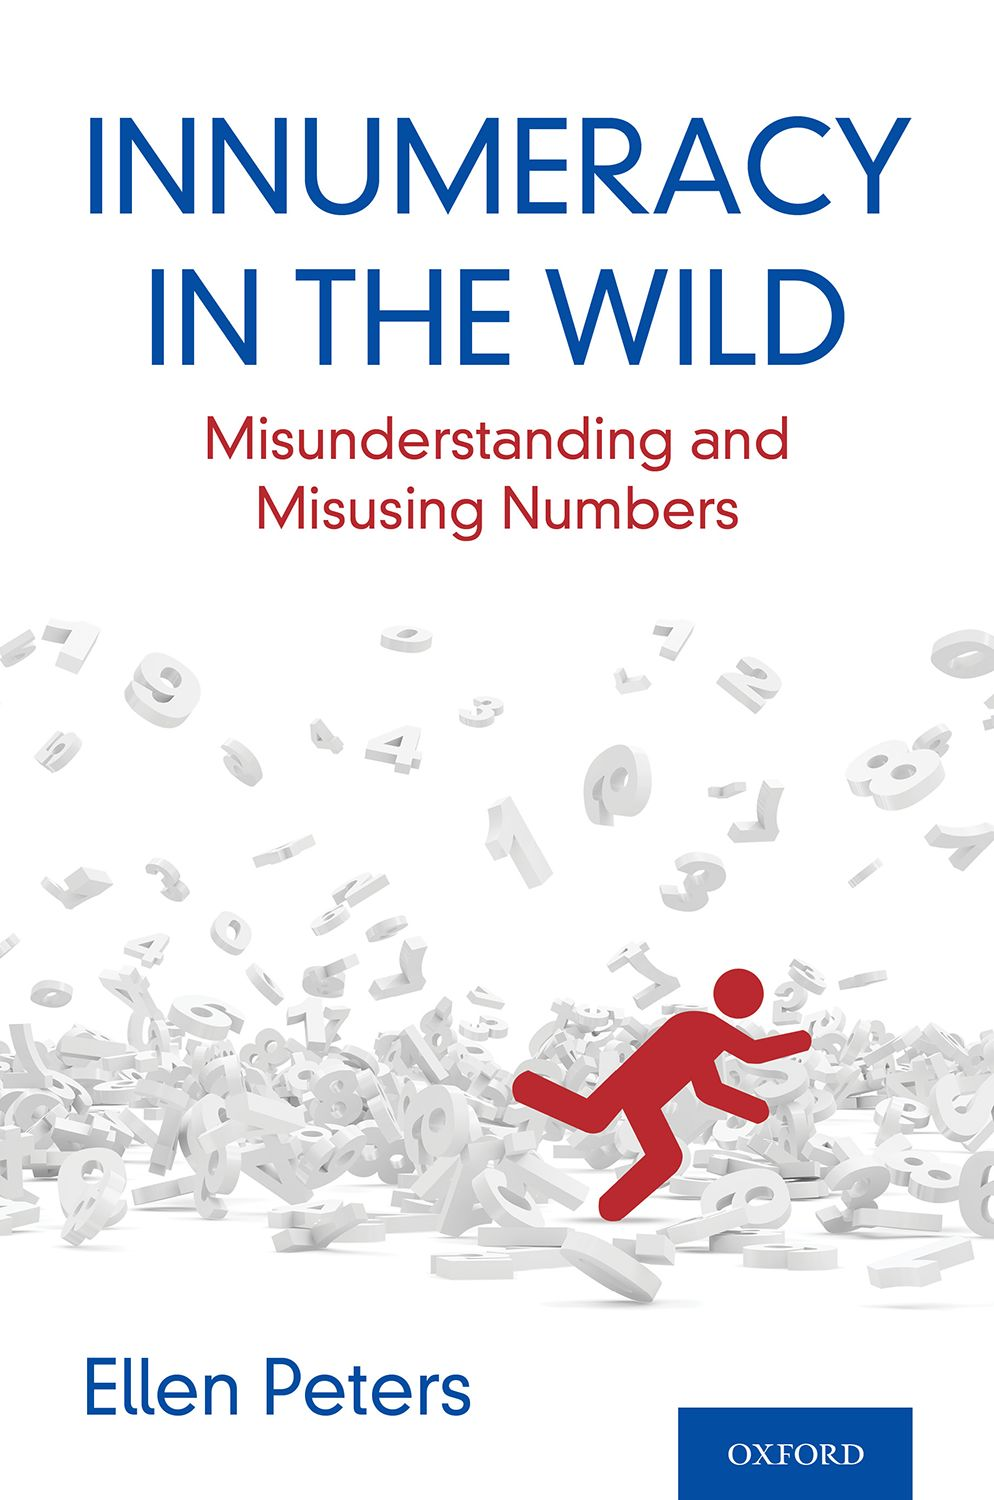 Innumeration in the wild book cover